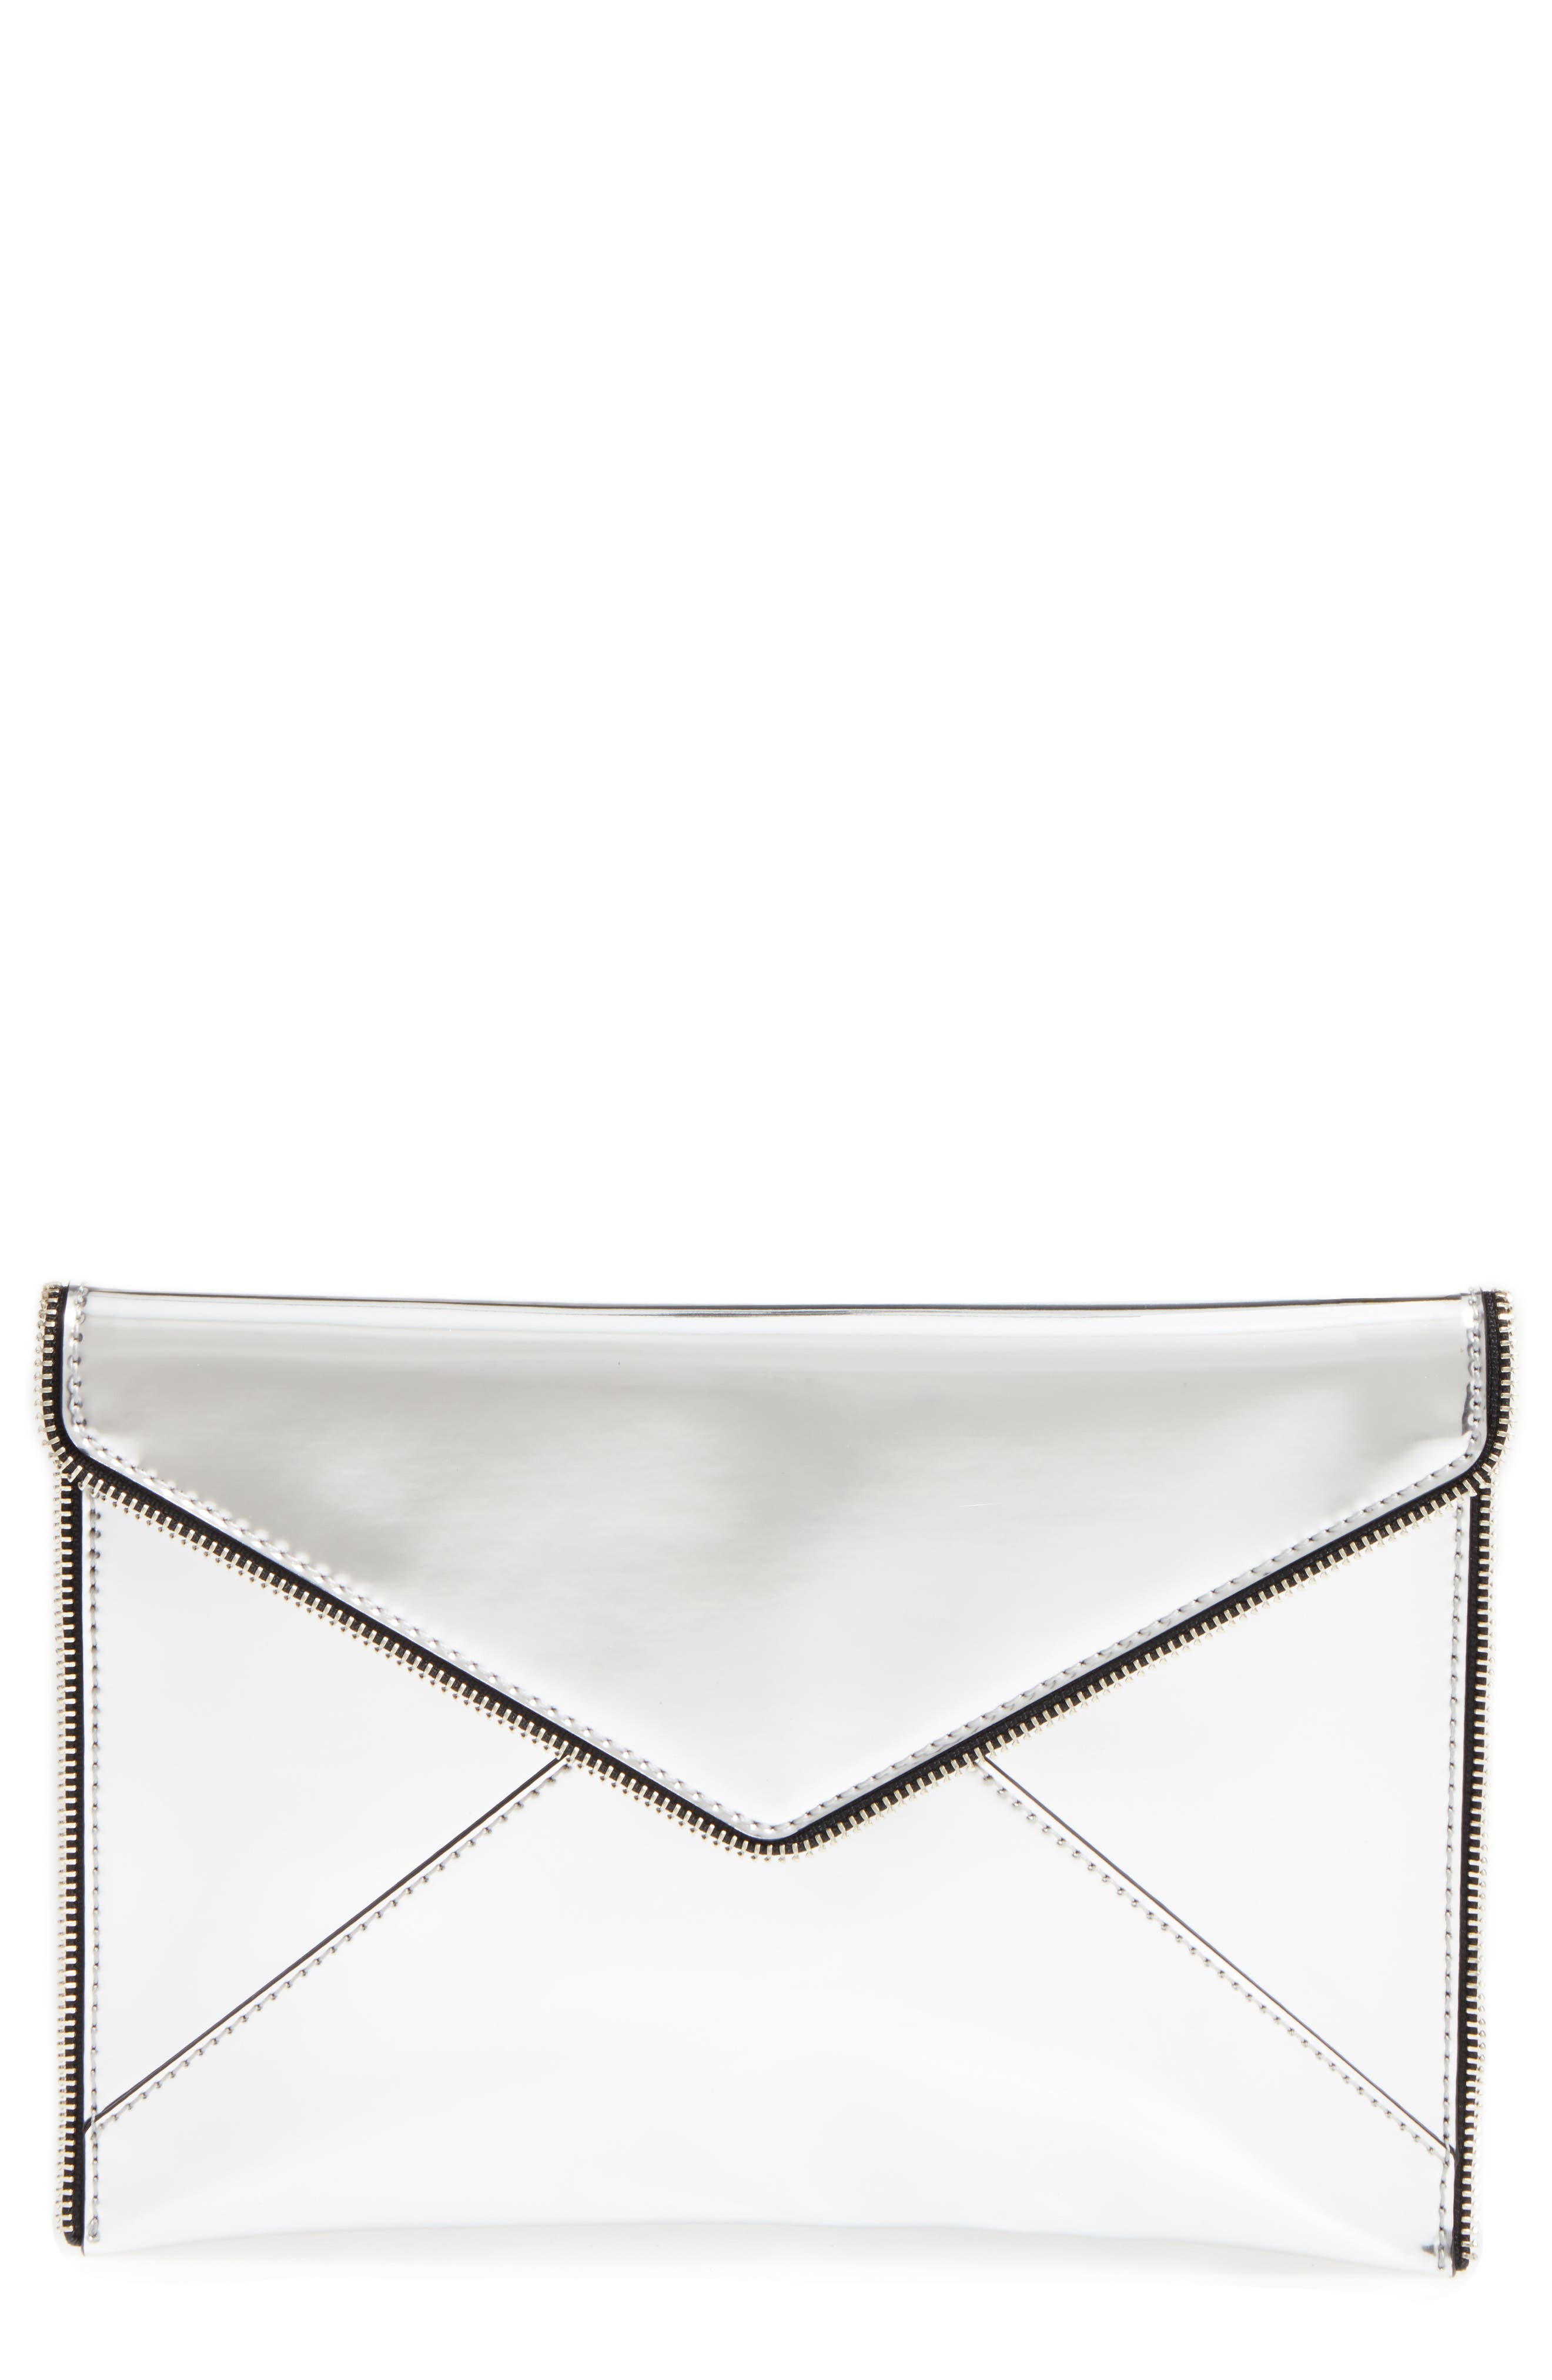 Main Image - Rebecca Minkoff Mirrored Leo Clutch